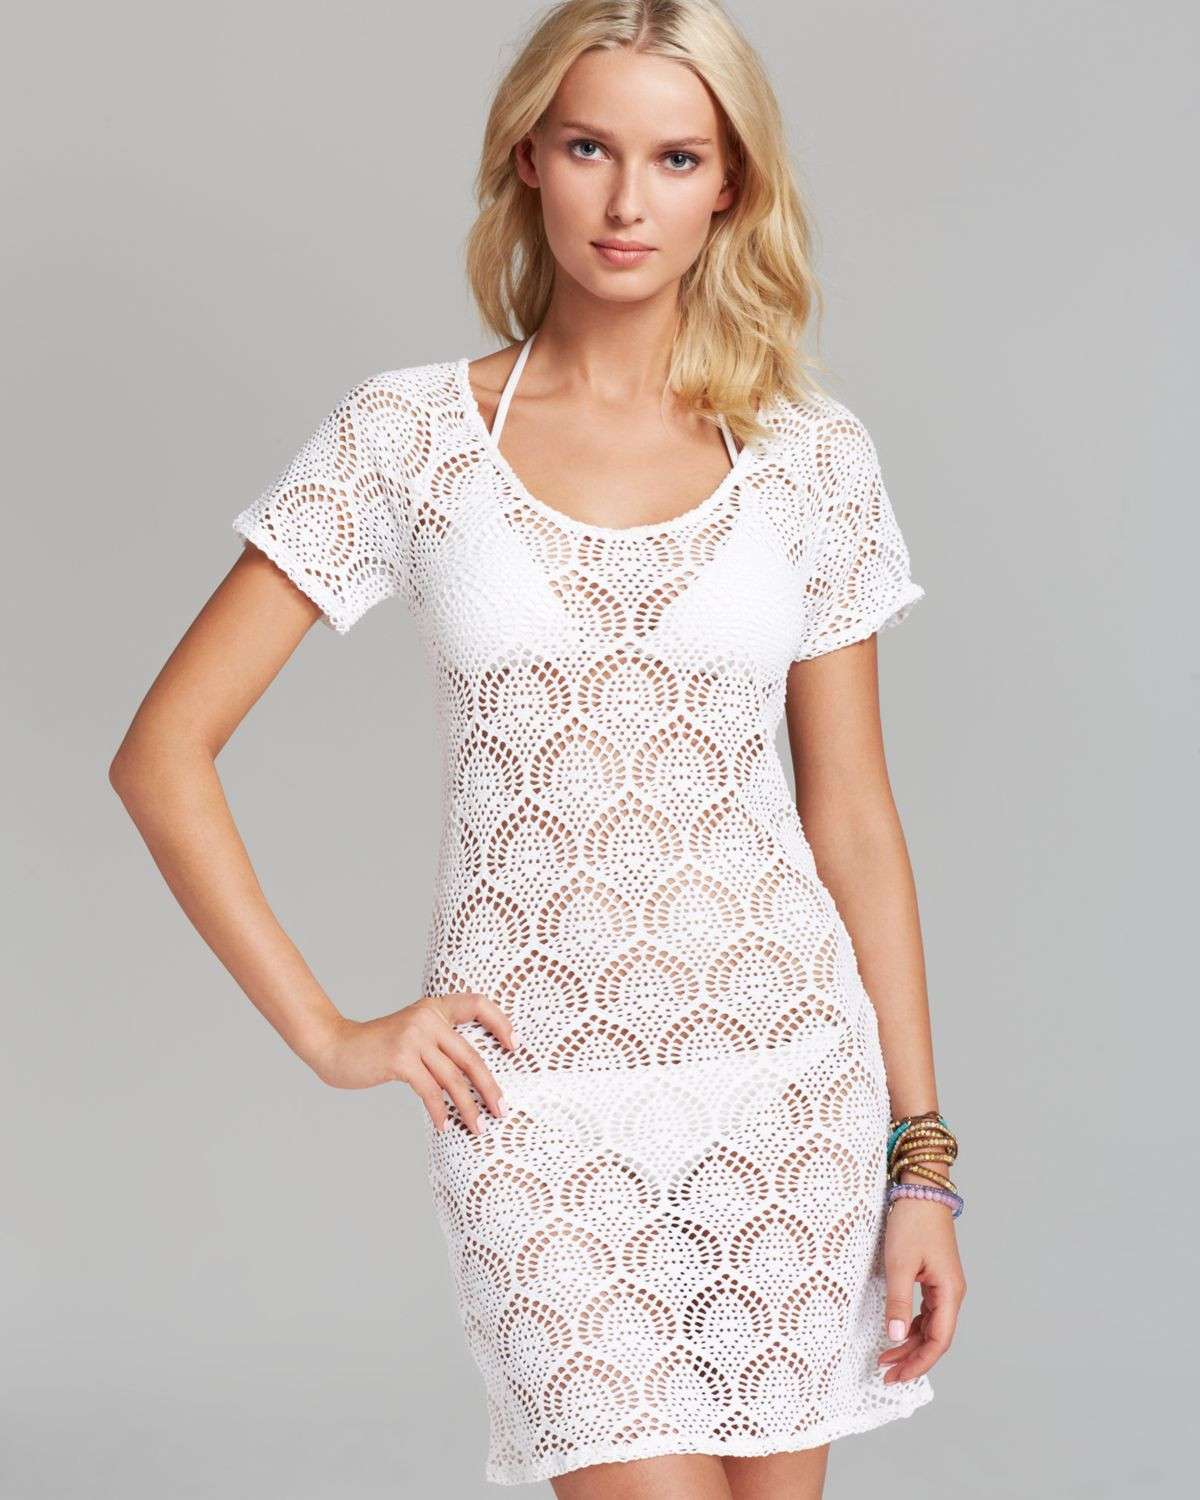 White Crochet Coverup Fresh La Blanca Casablanca Crochet Swim Cover Up Dress In White Of Unique 50 Models White Crochet Coverup